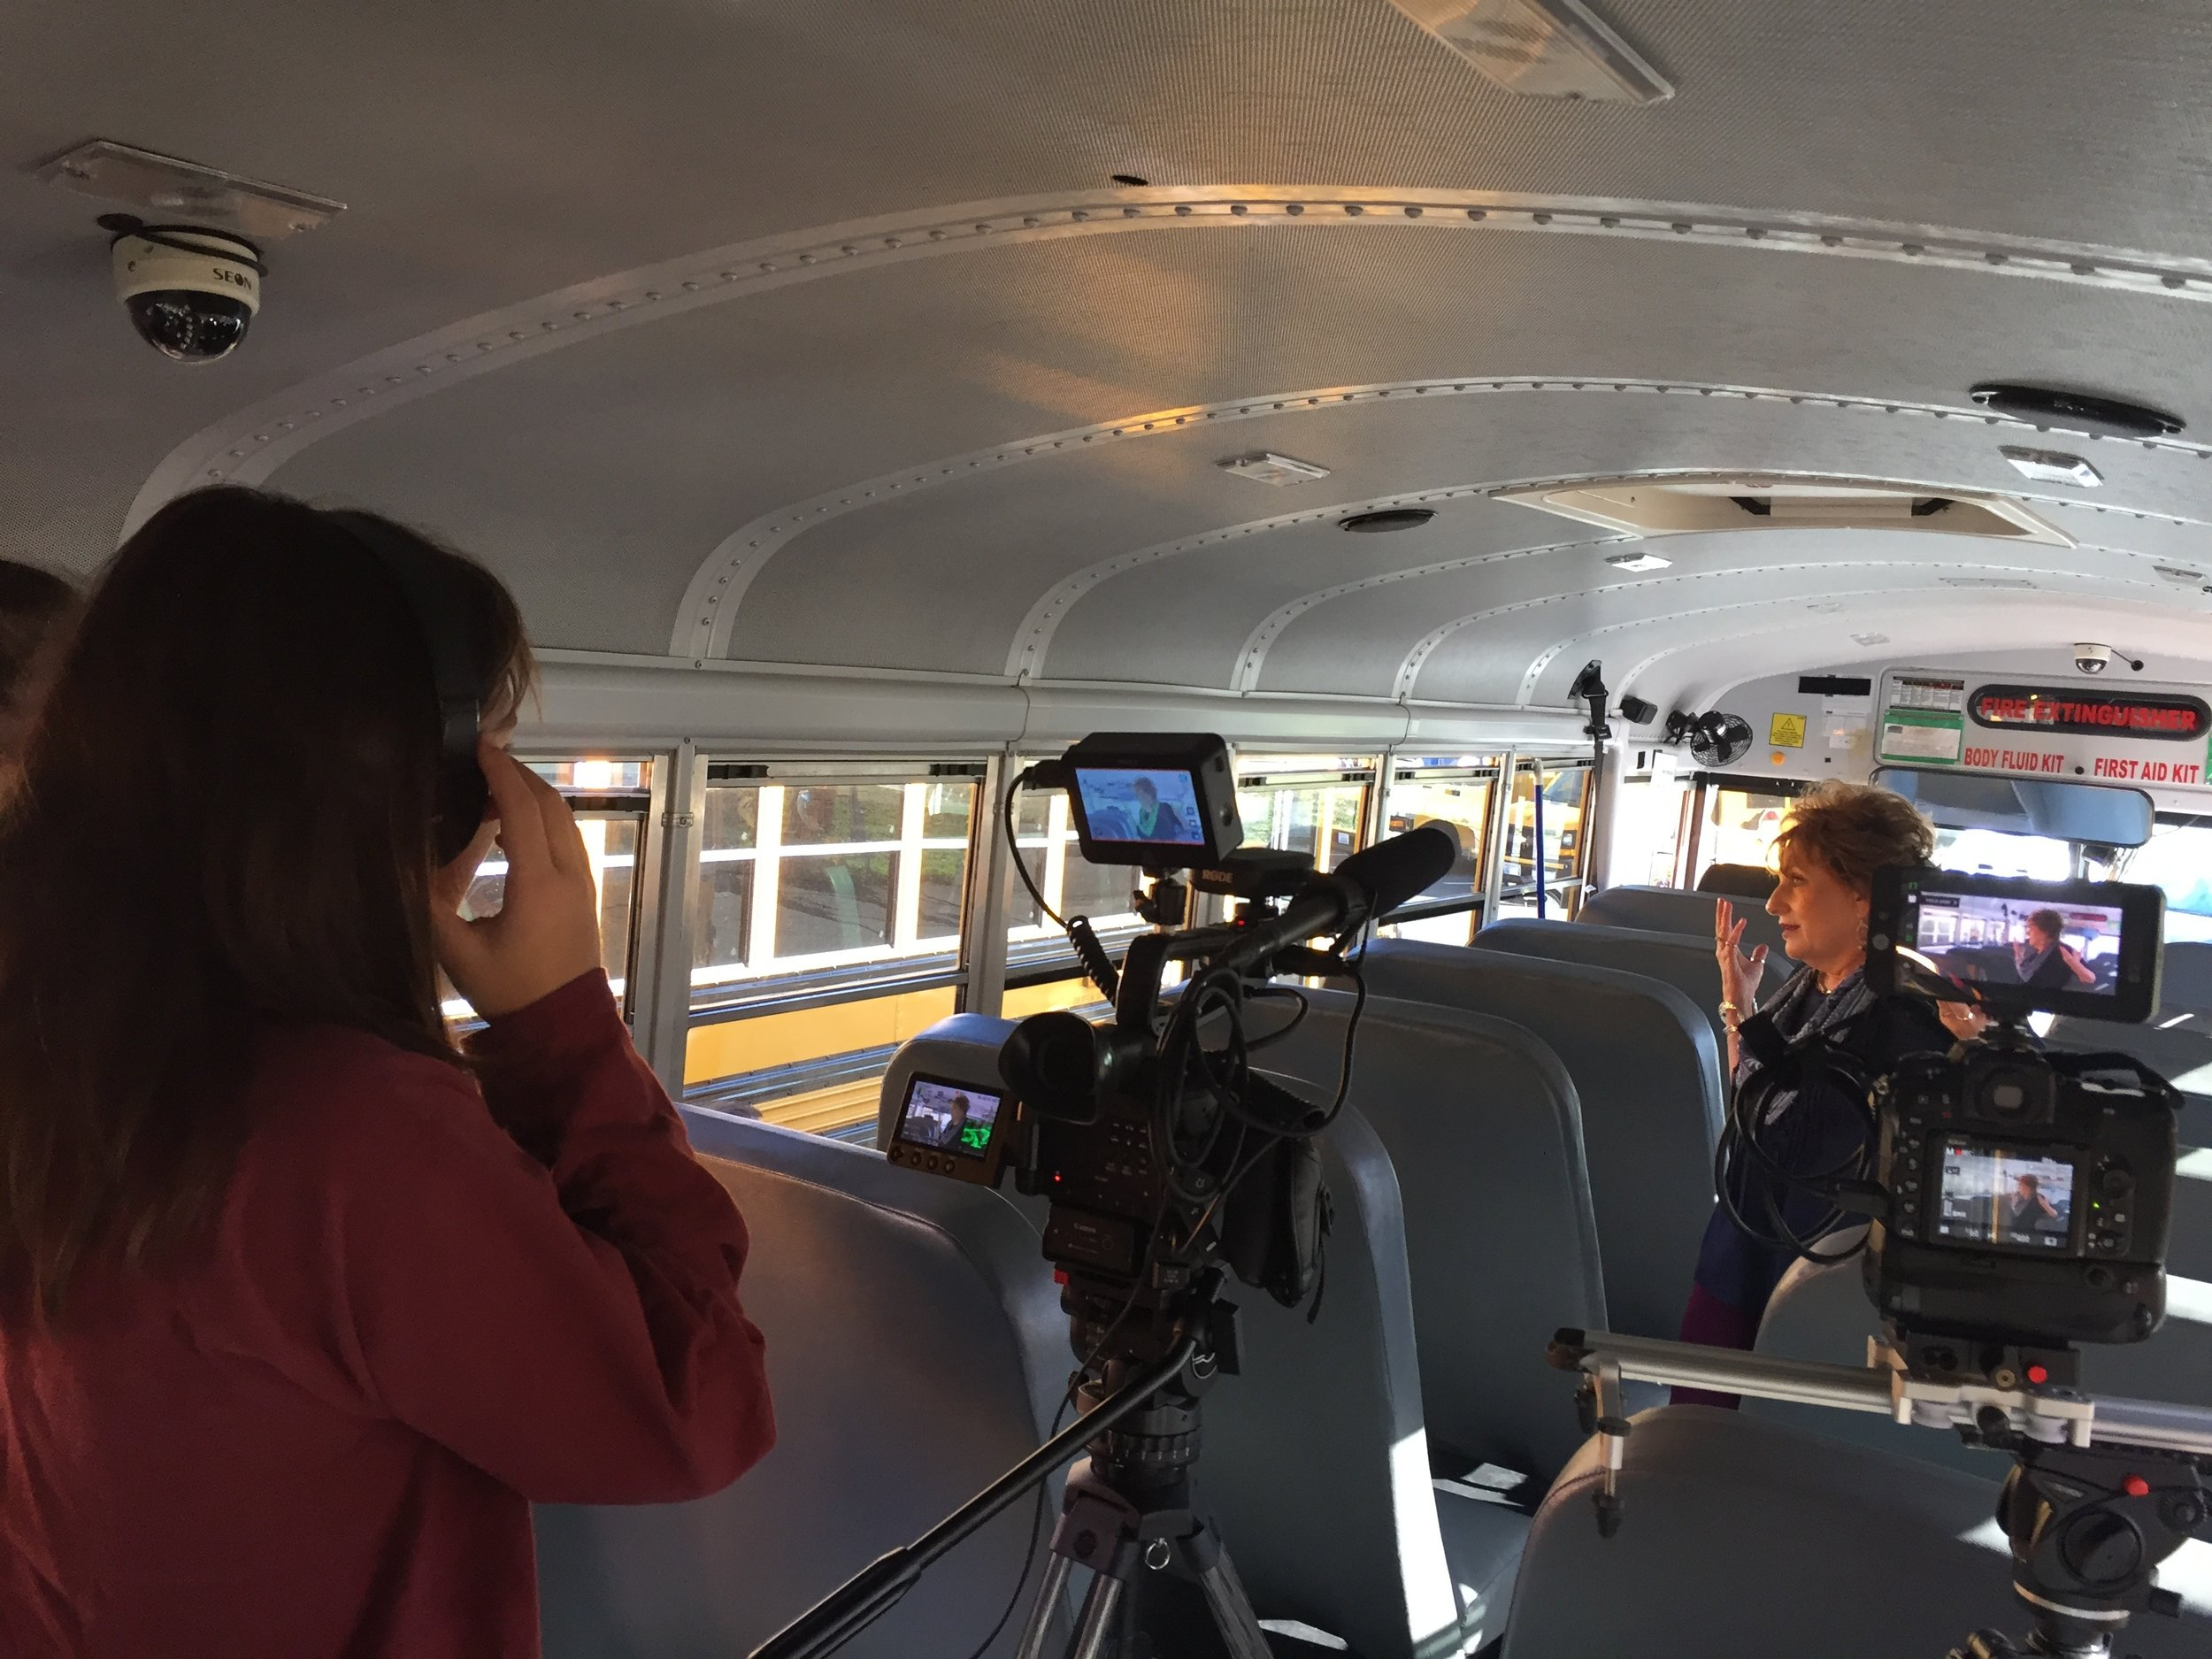 Filming inside a bus!